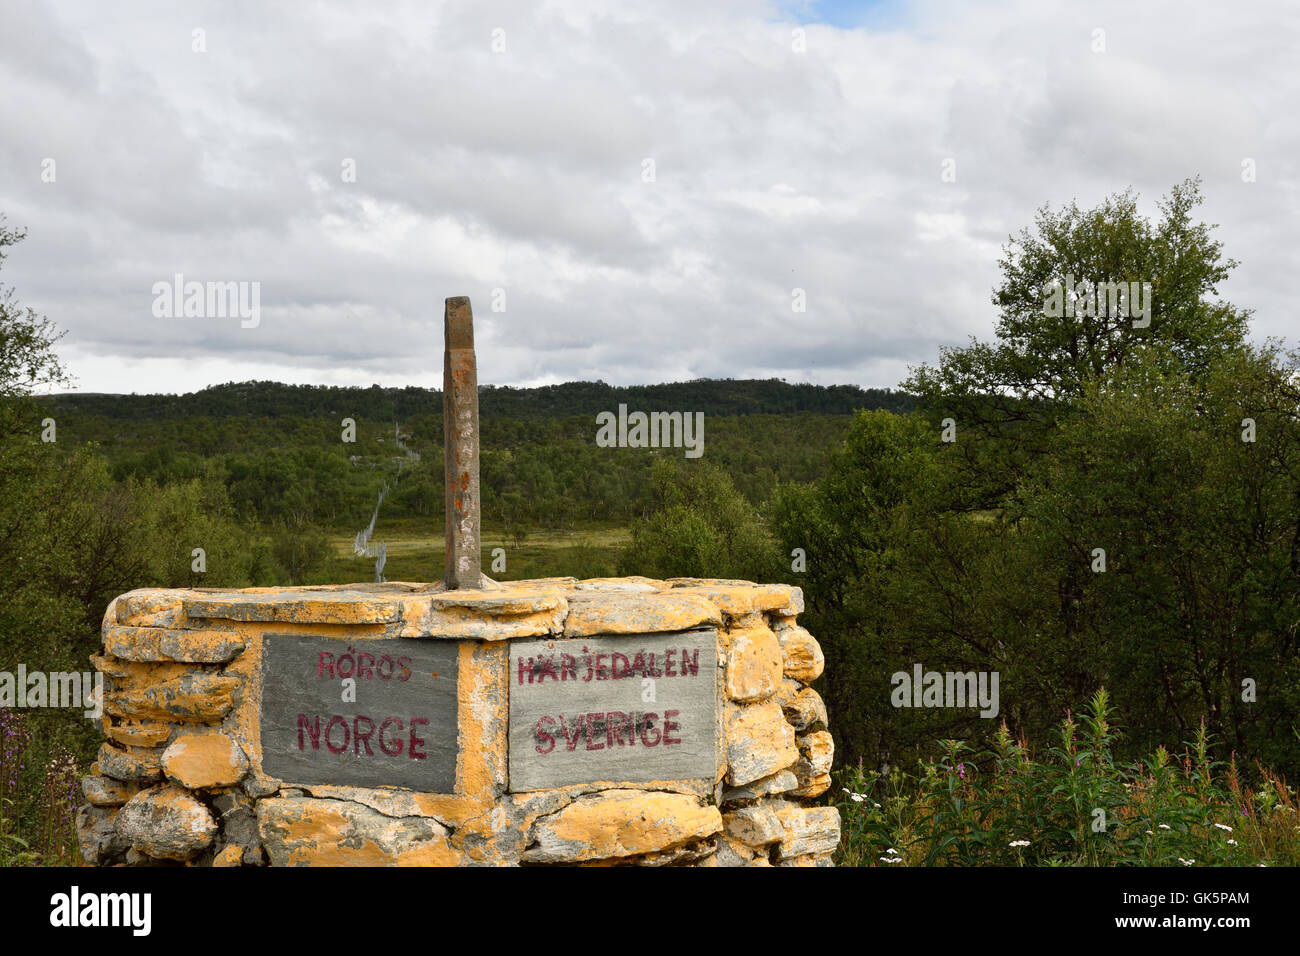 Stone on the border between Norway and Sweden in the North. - Stock Image